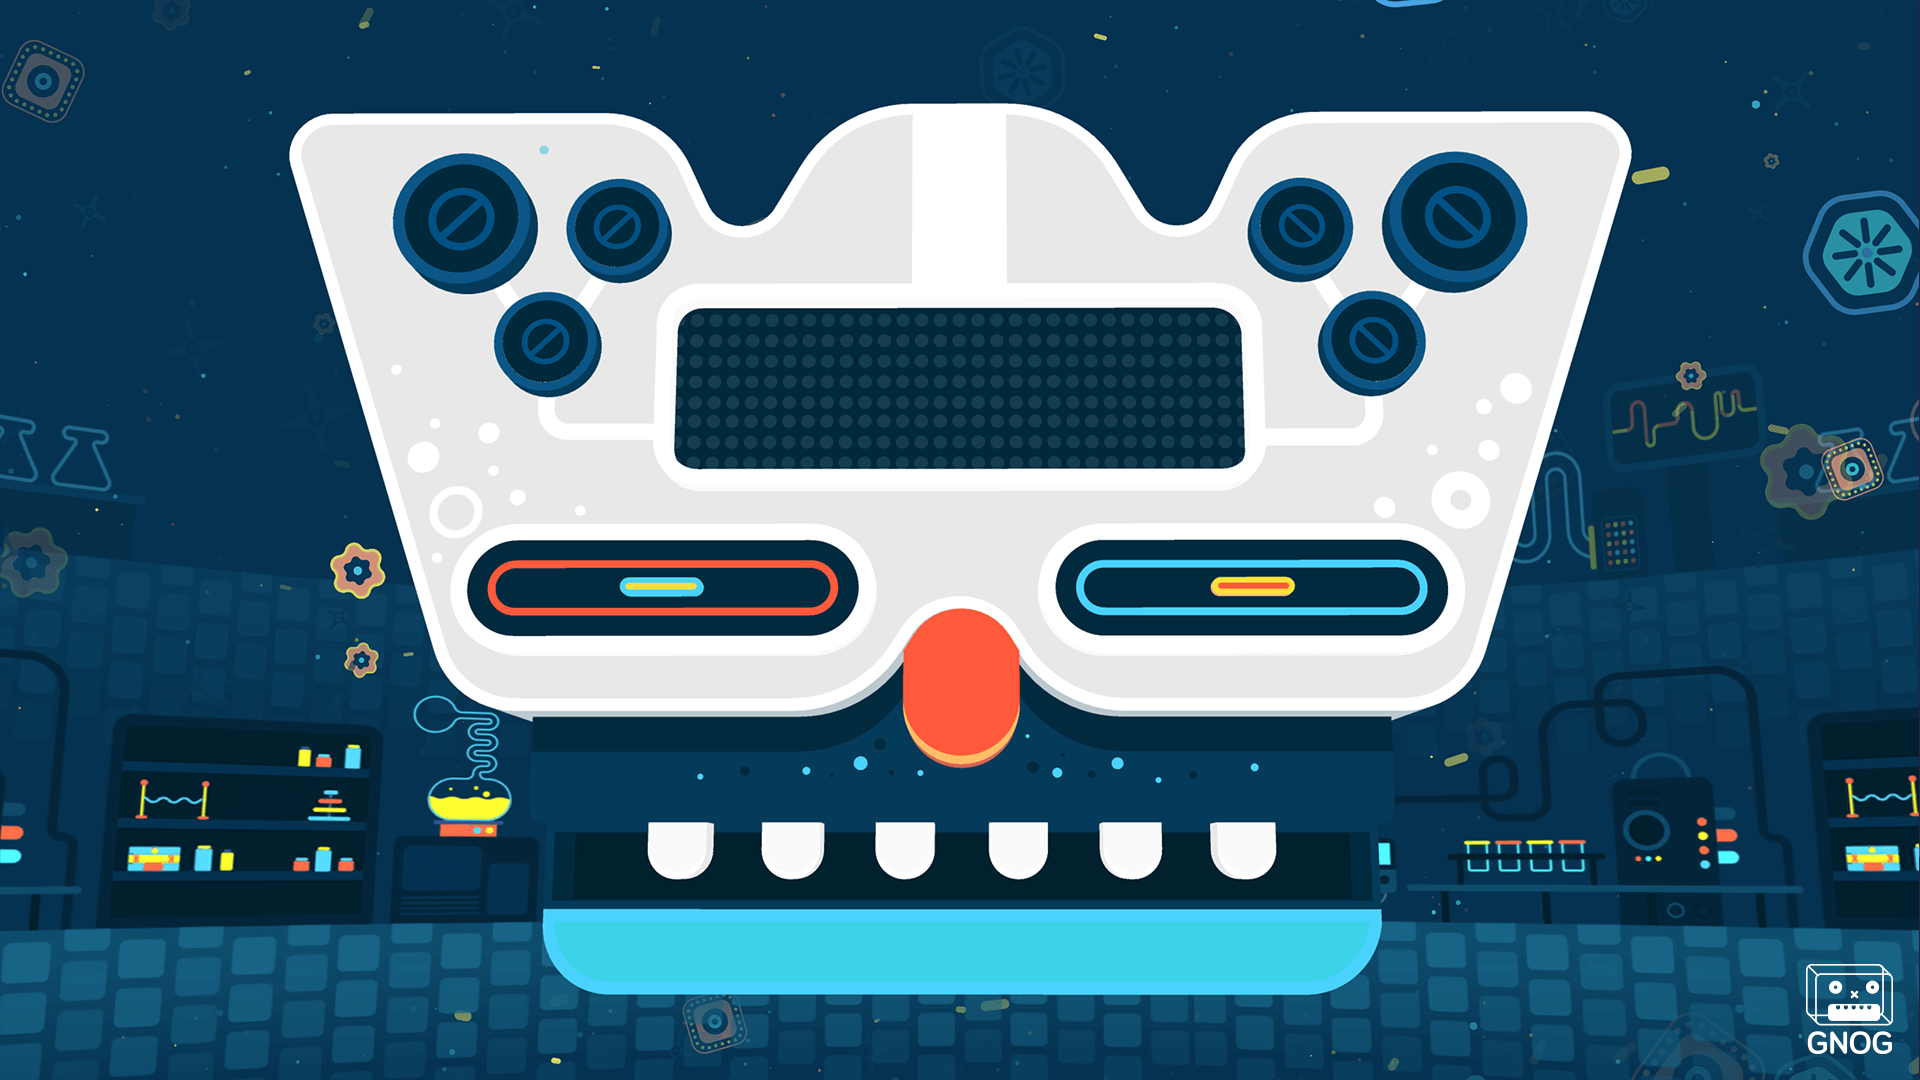 Gnog Out Now Electric Box Walkthrough Science Games Blog Play A Game By